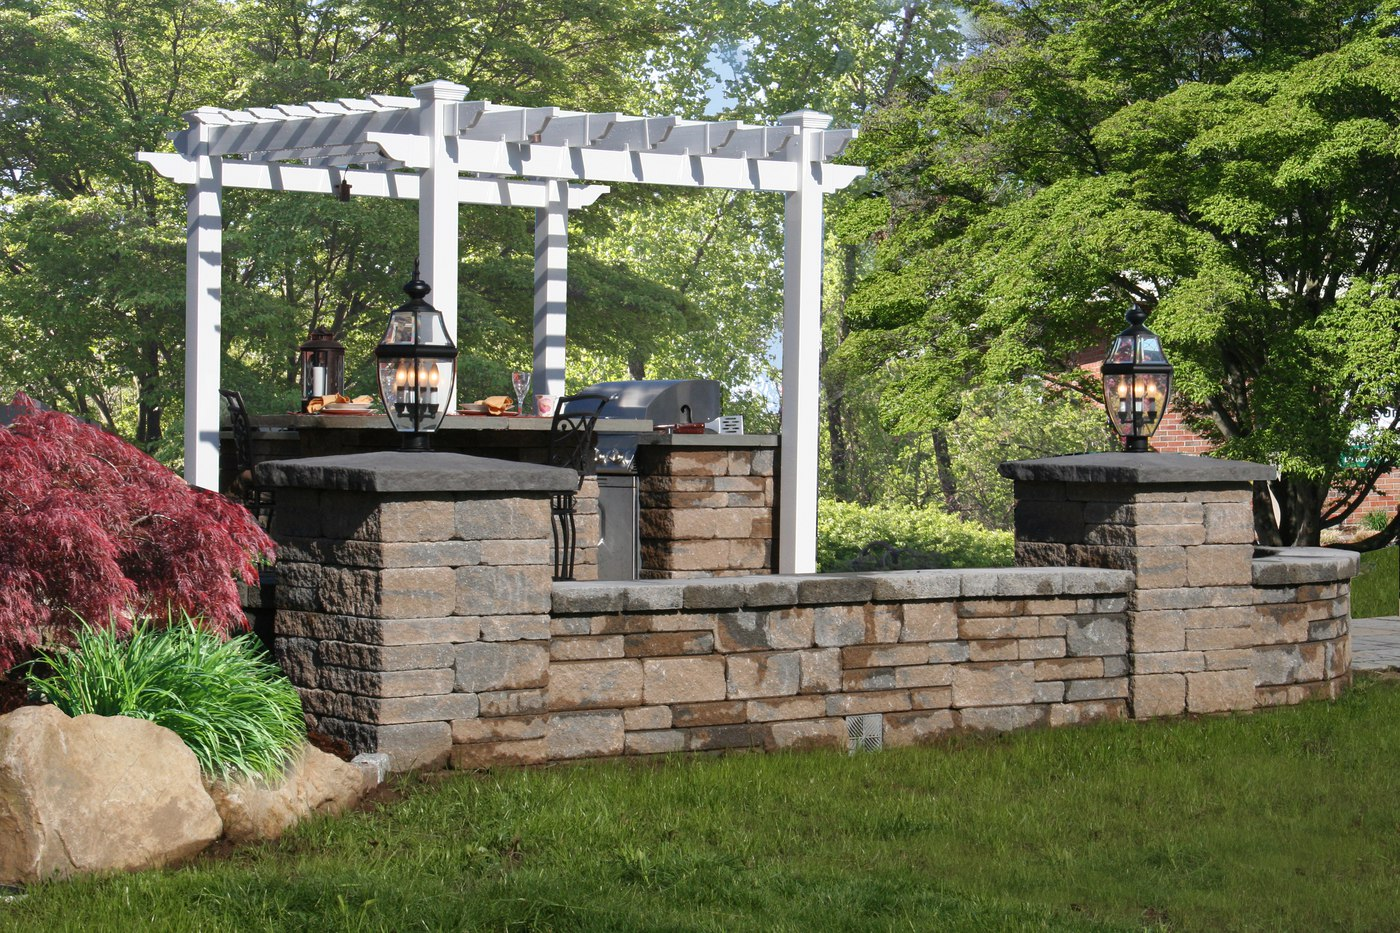 Outdoor Kitchen with Built-in Grill and Pergola by Bahler Brothers in CT